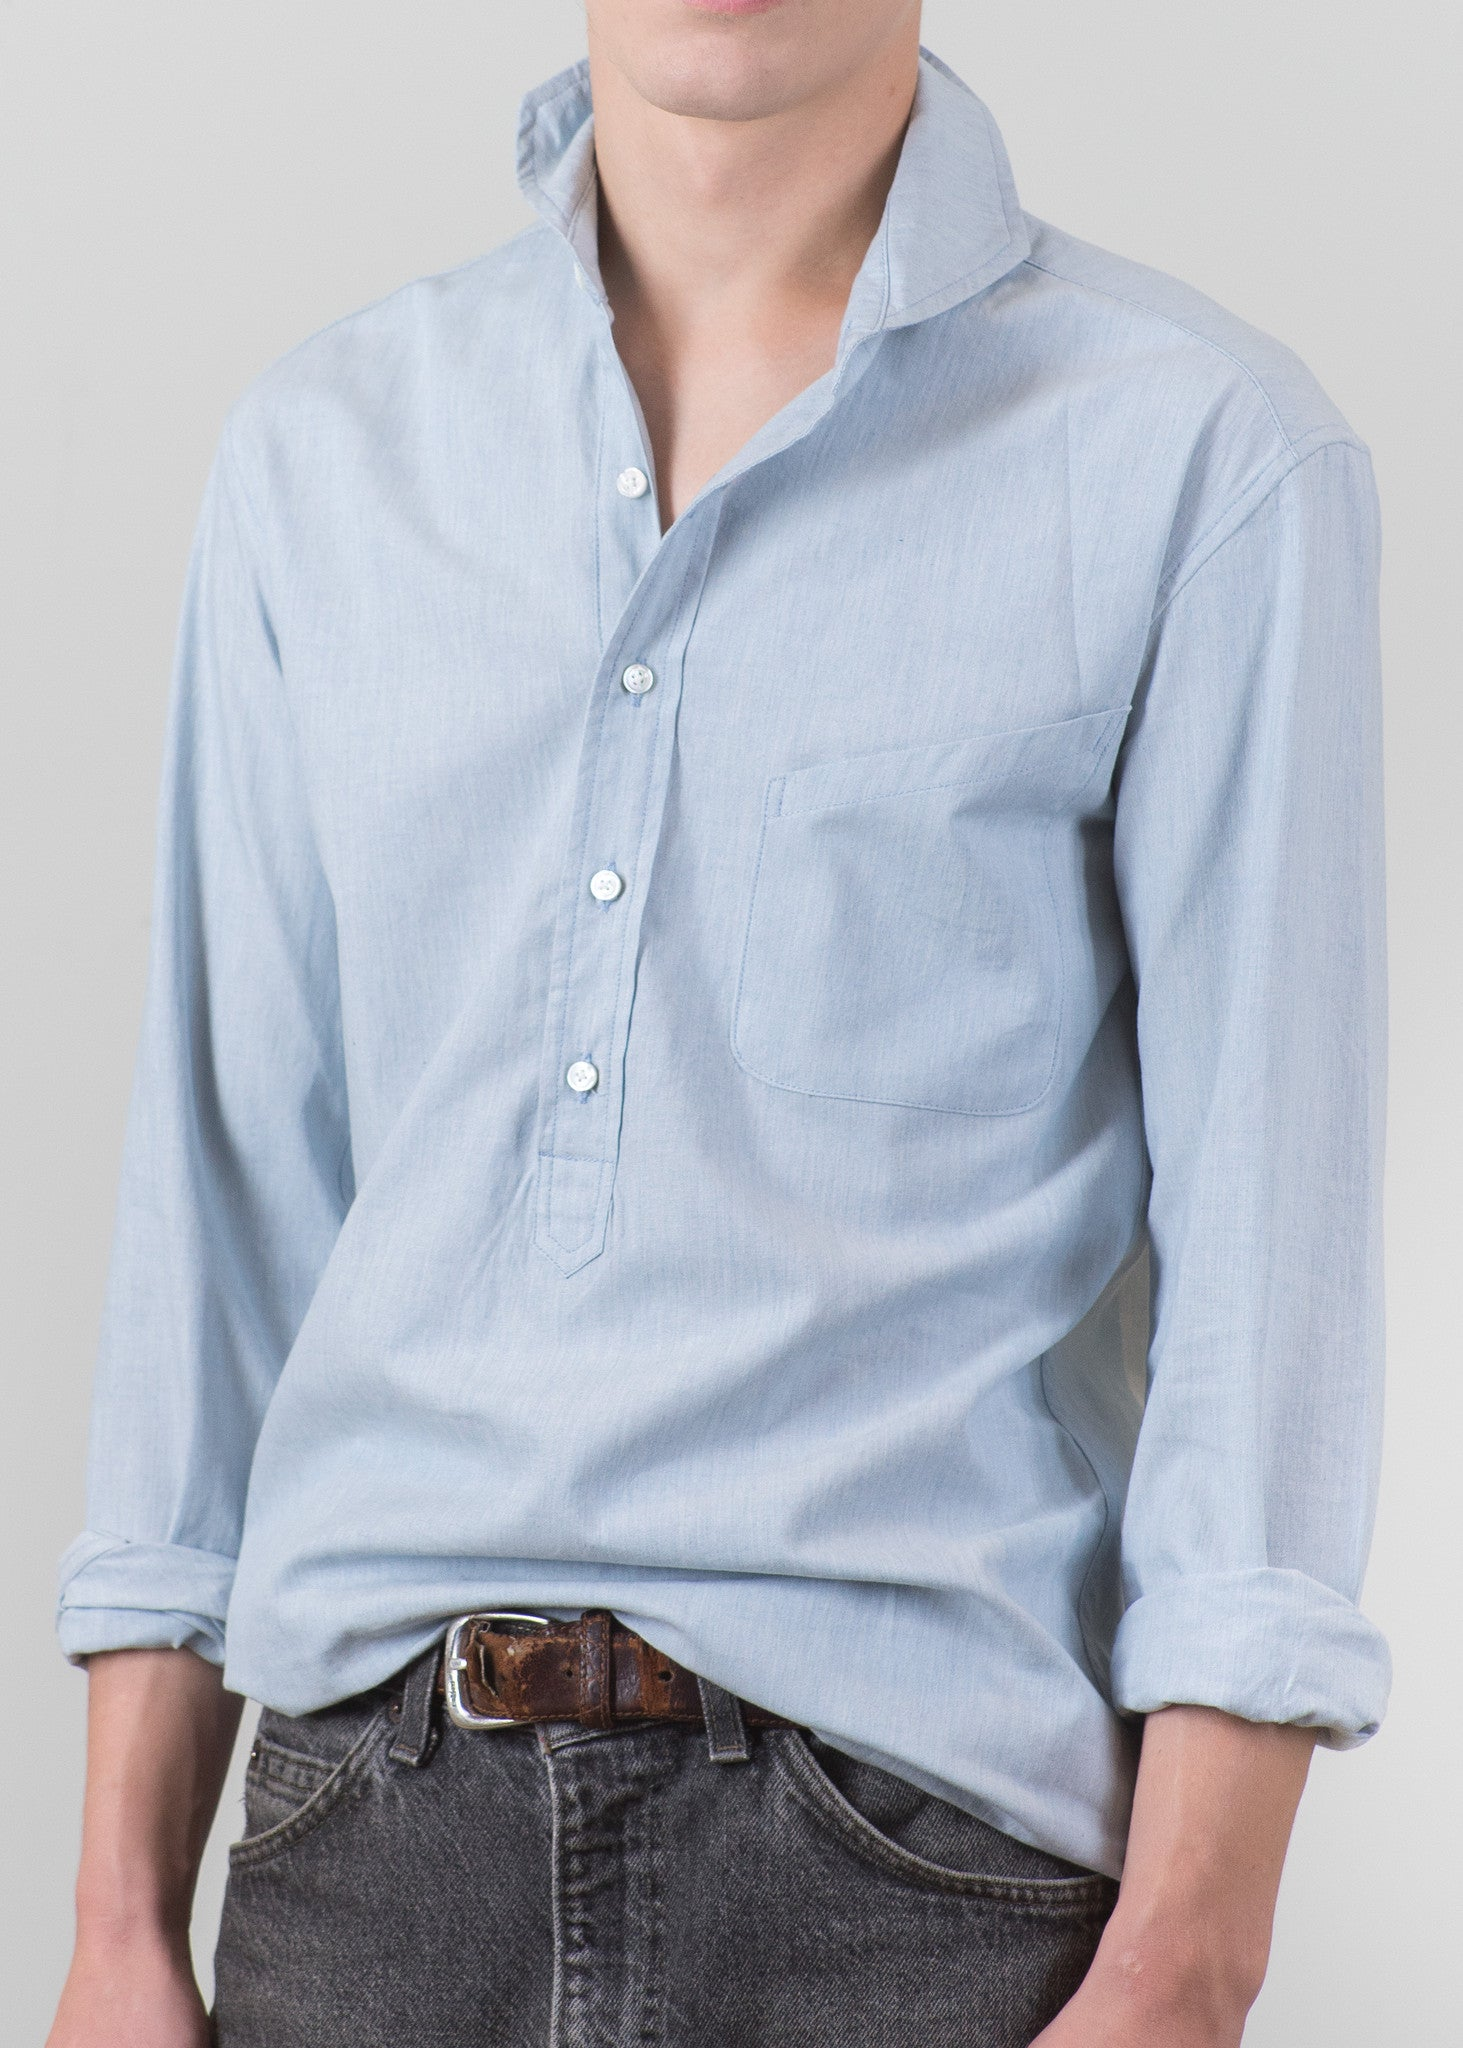 Cutaway Collar Popover Shirt - Light Chambray - New Union Clothing